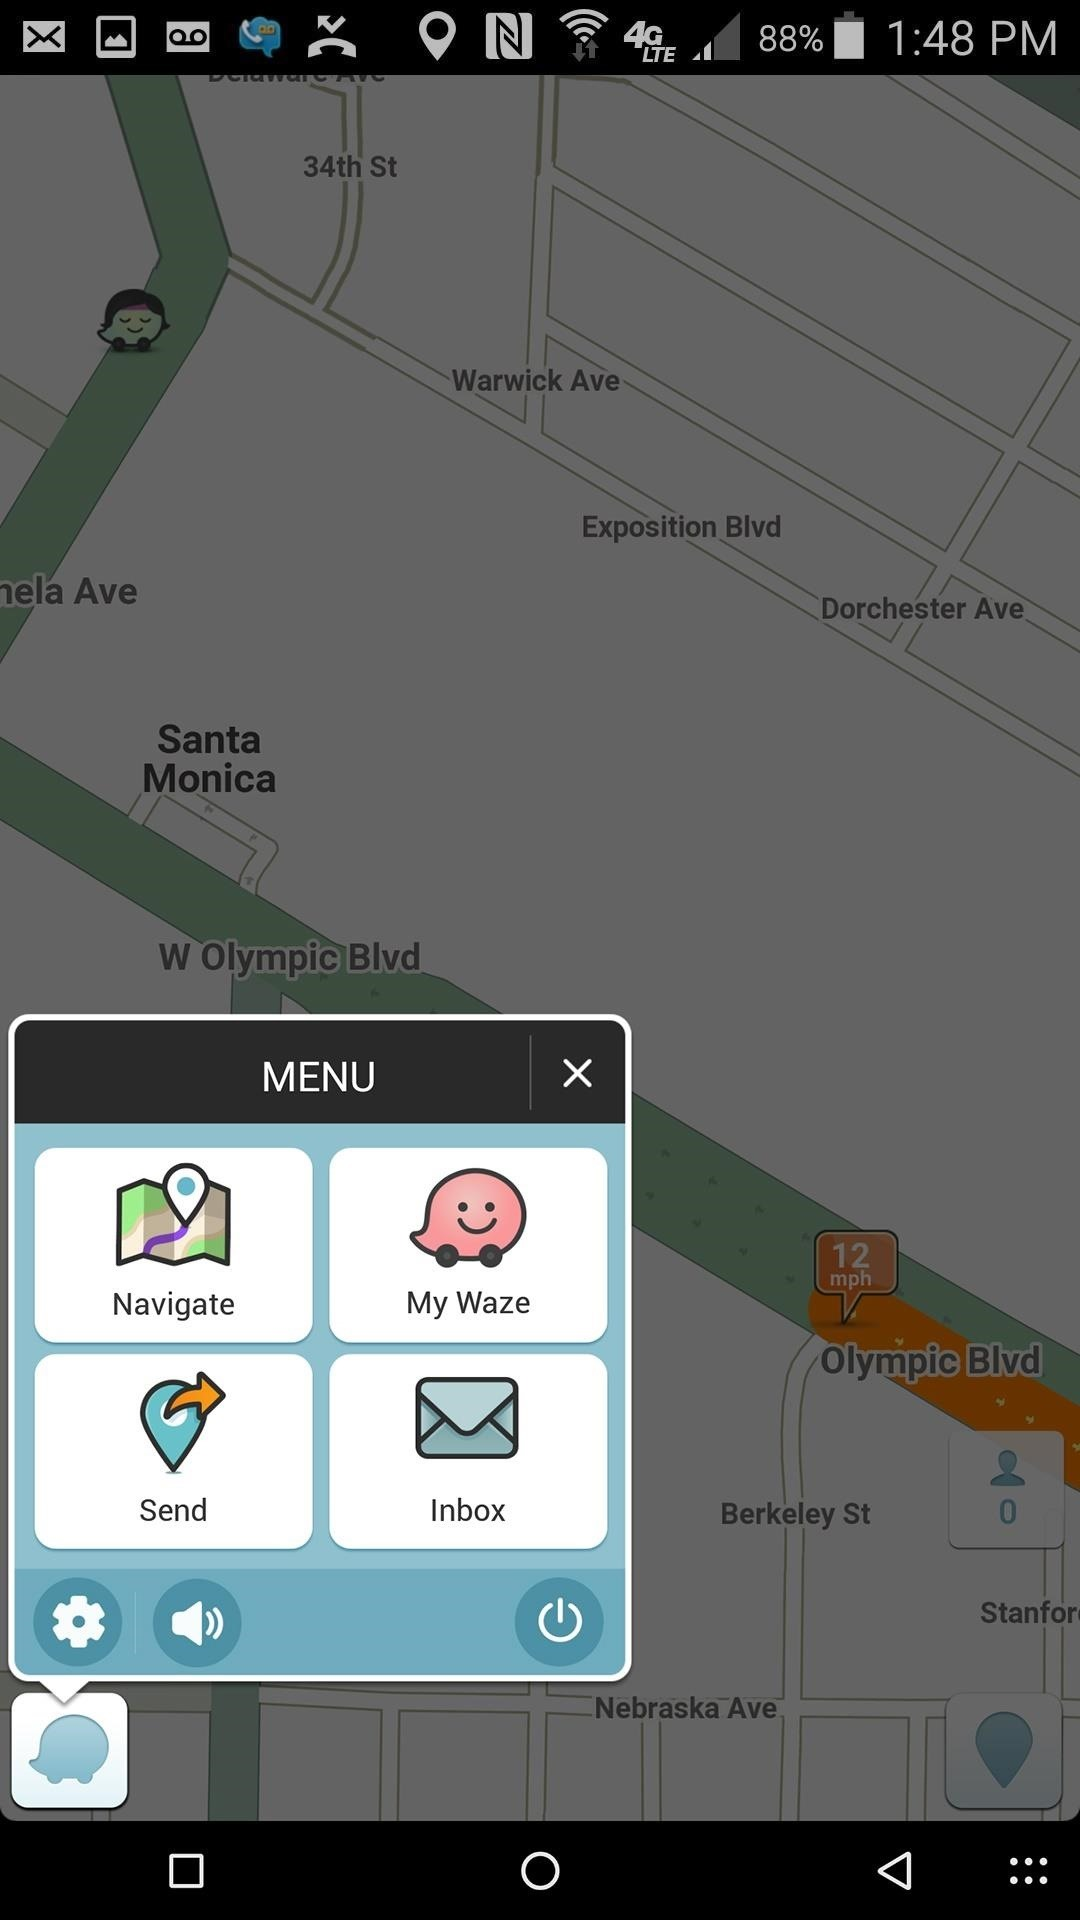 How to Get Famous People Like Morgan Freeman to Navigate Your Waze Directions